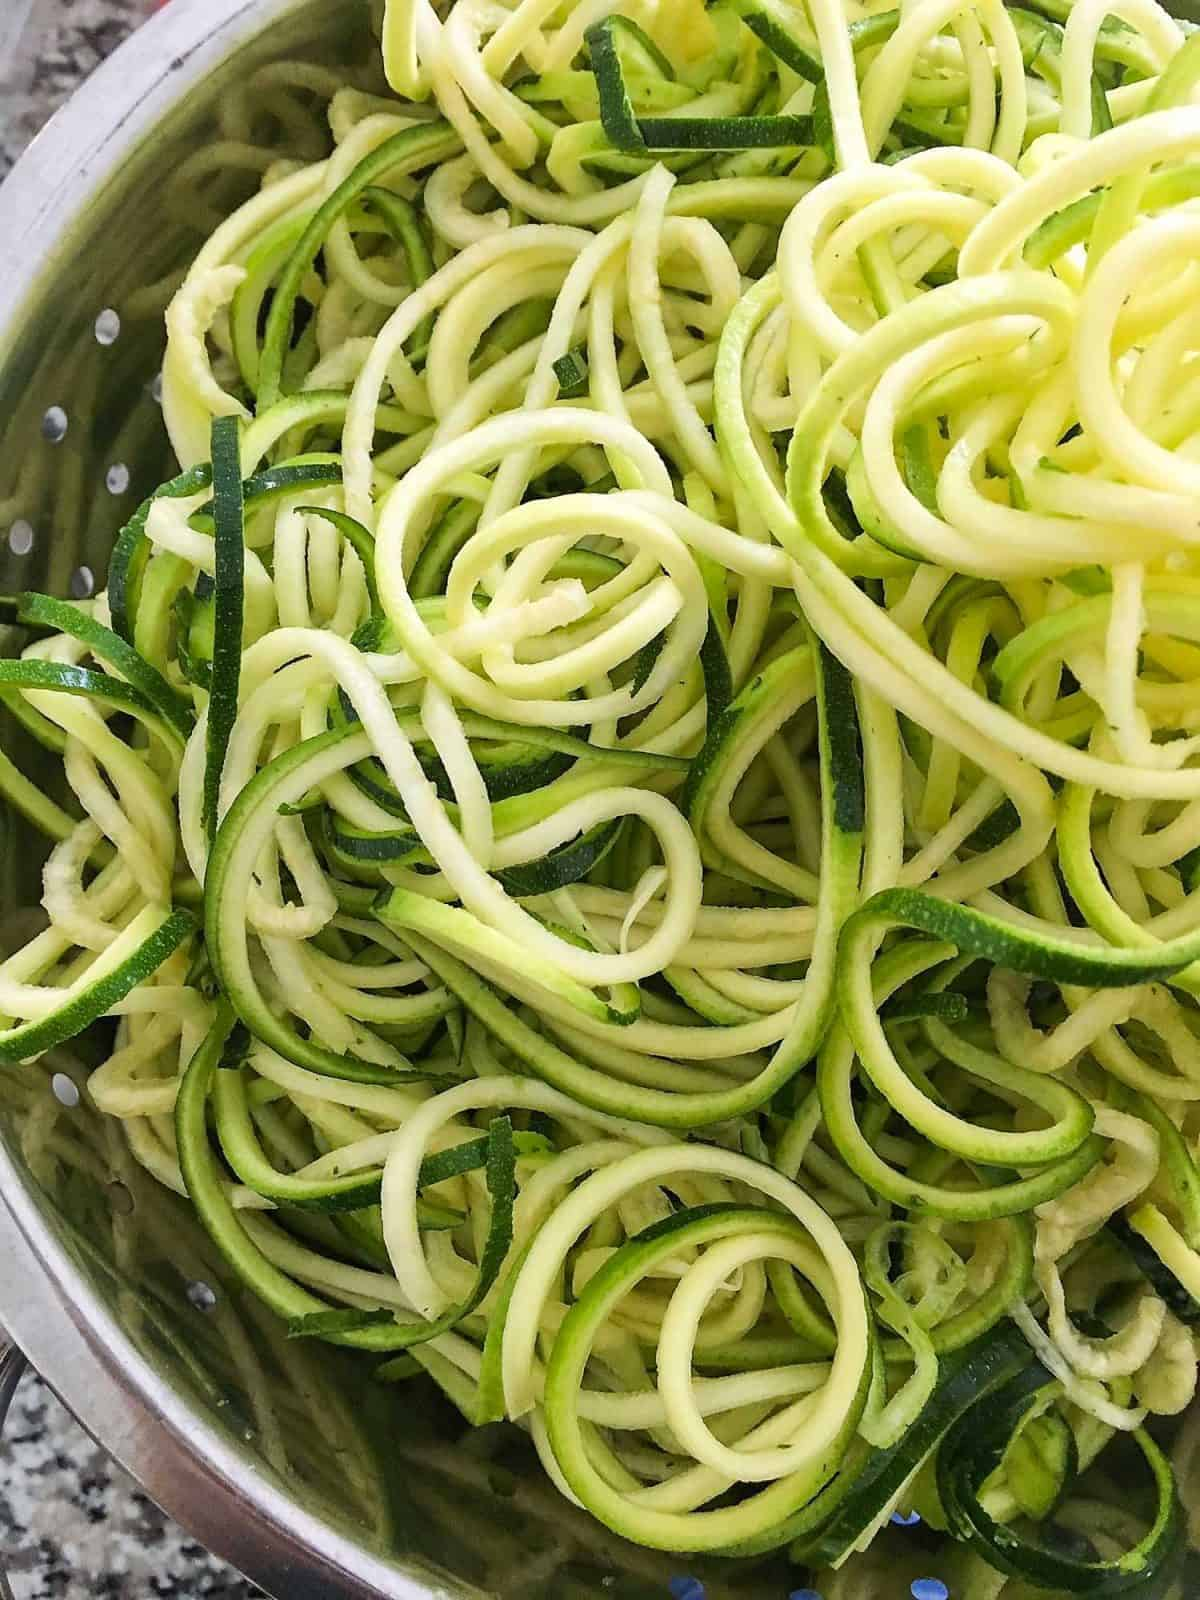 spiralized zucchini noodles in colander